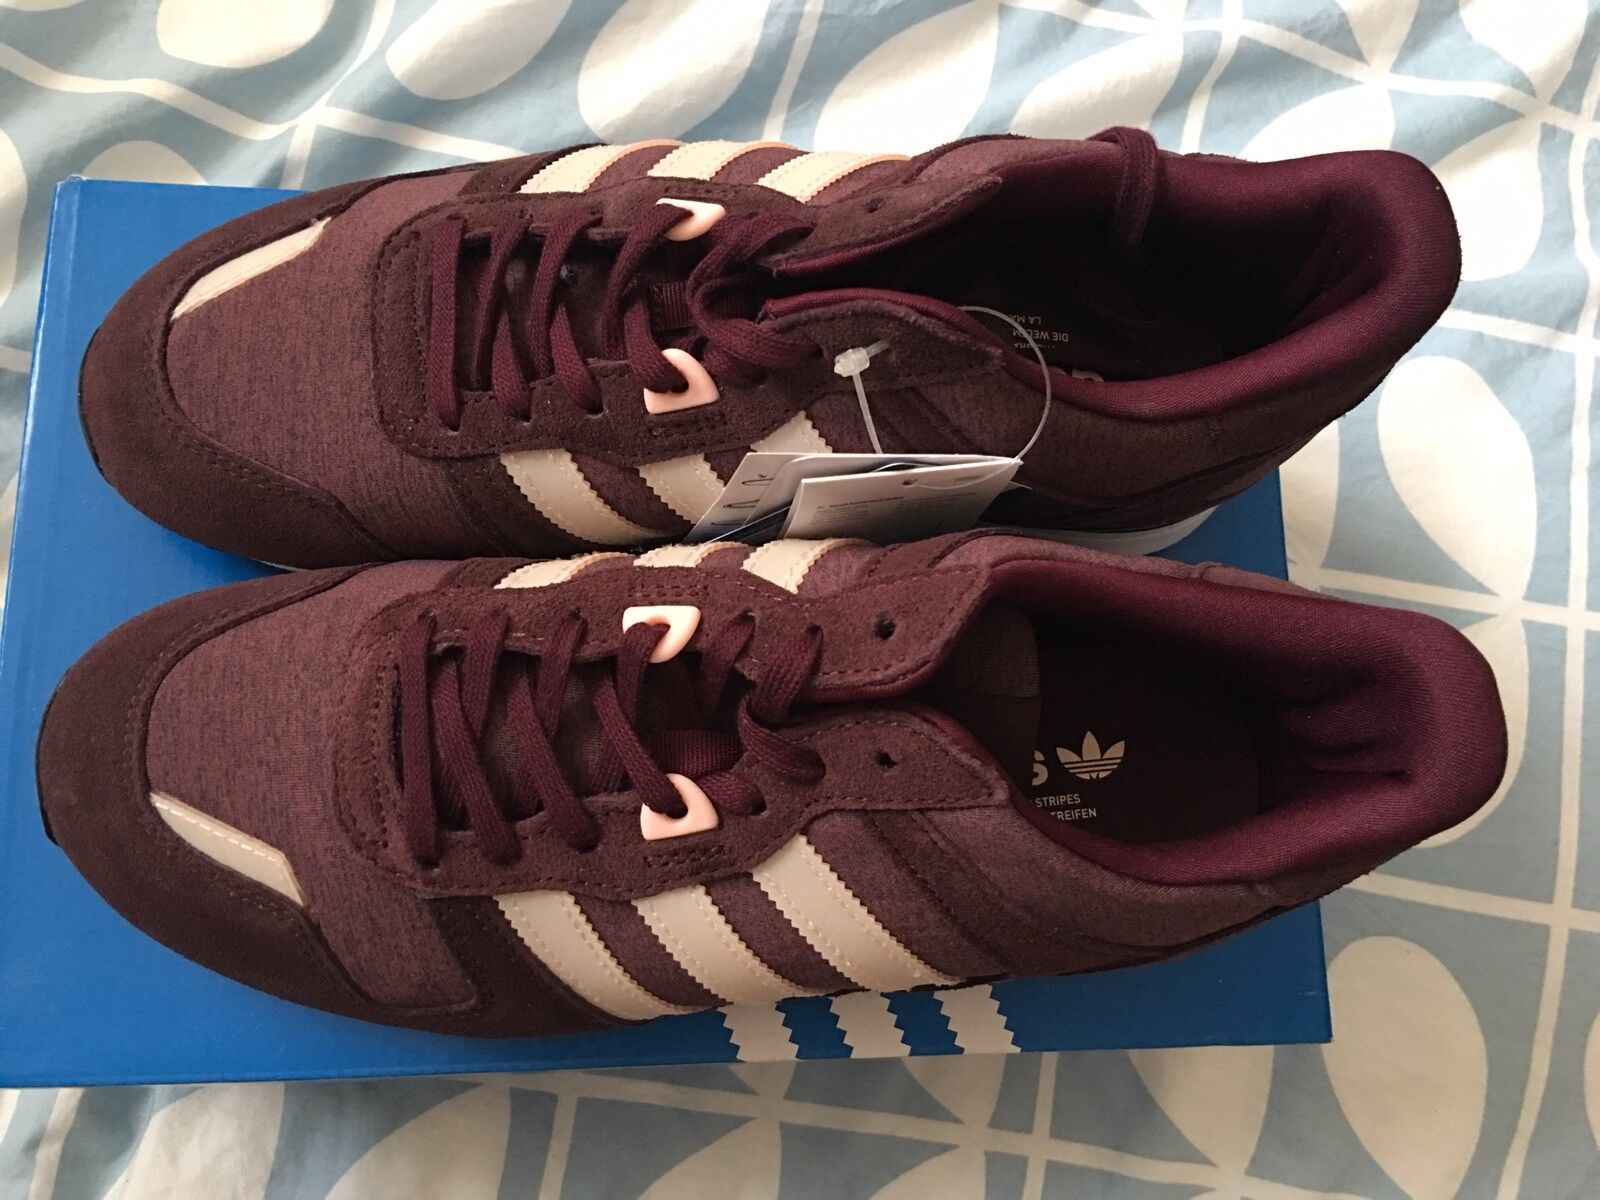 1b2d0d2a1 Women s adidas Originals ZX 700 W Low Rise Trainers in Burgundy UK 6 ...